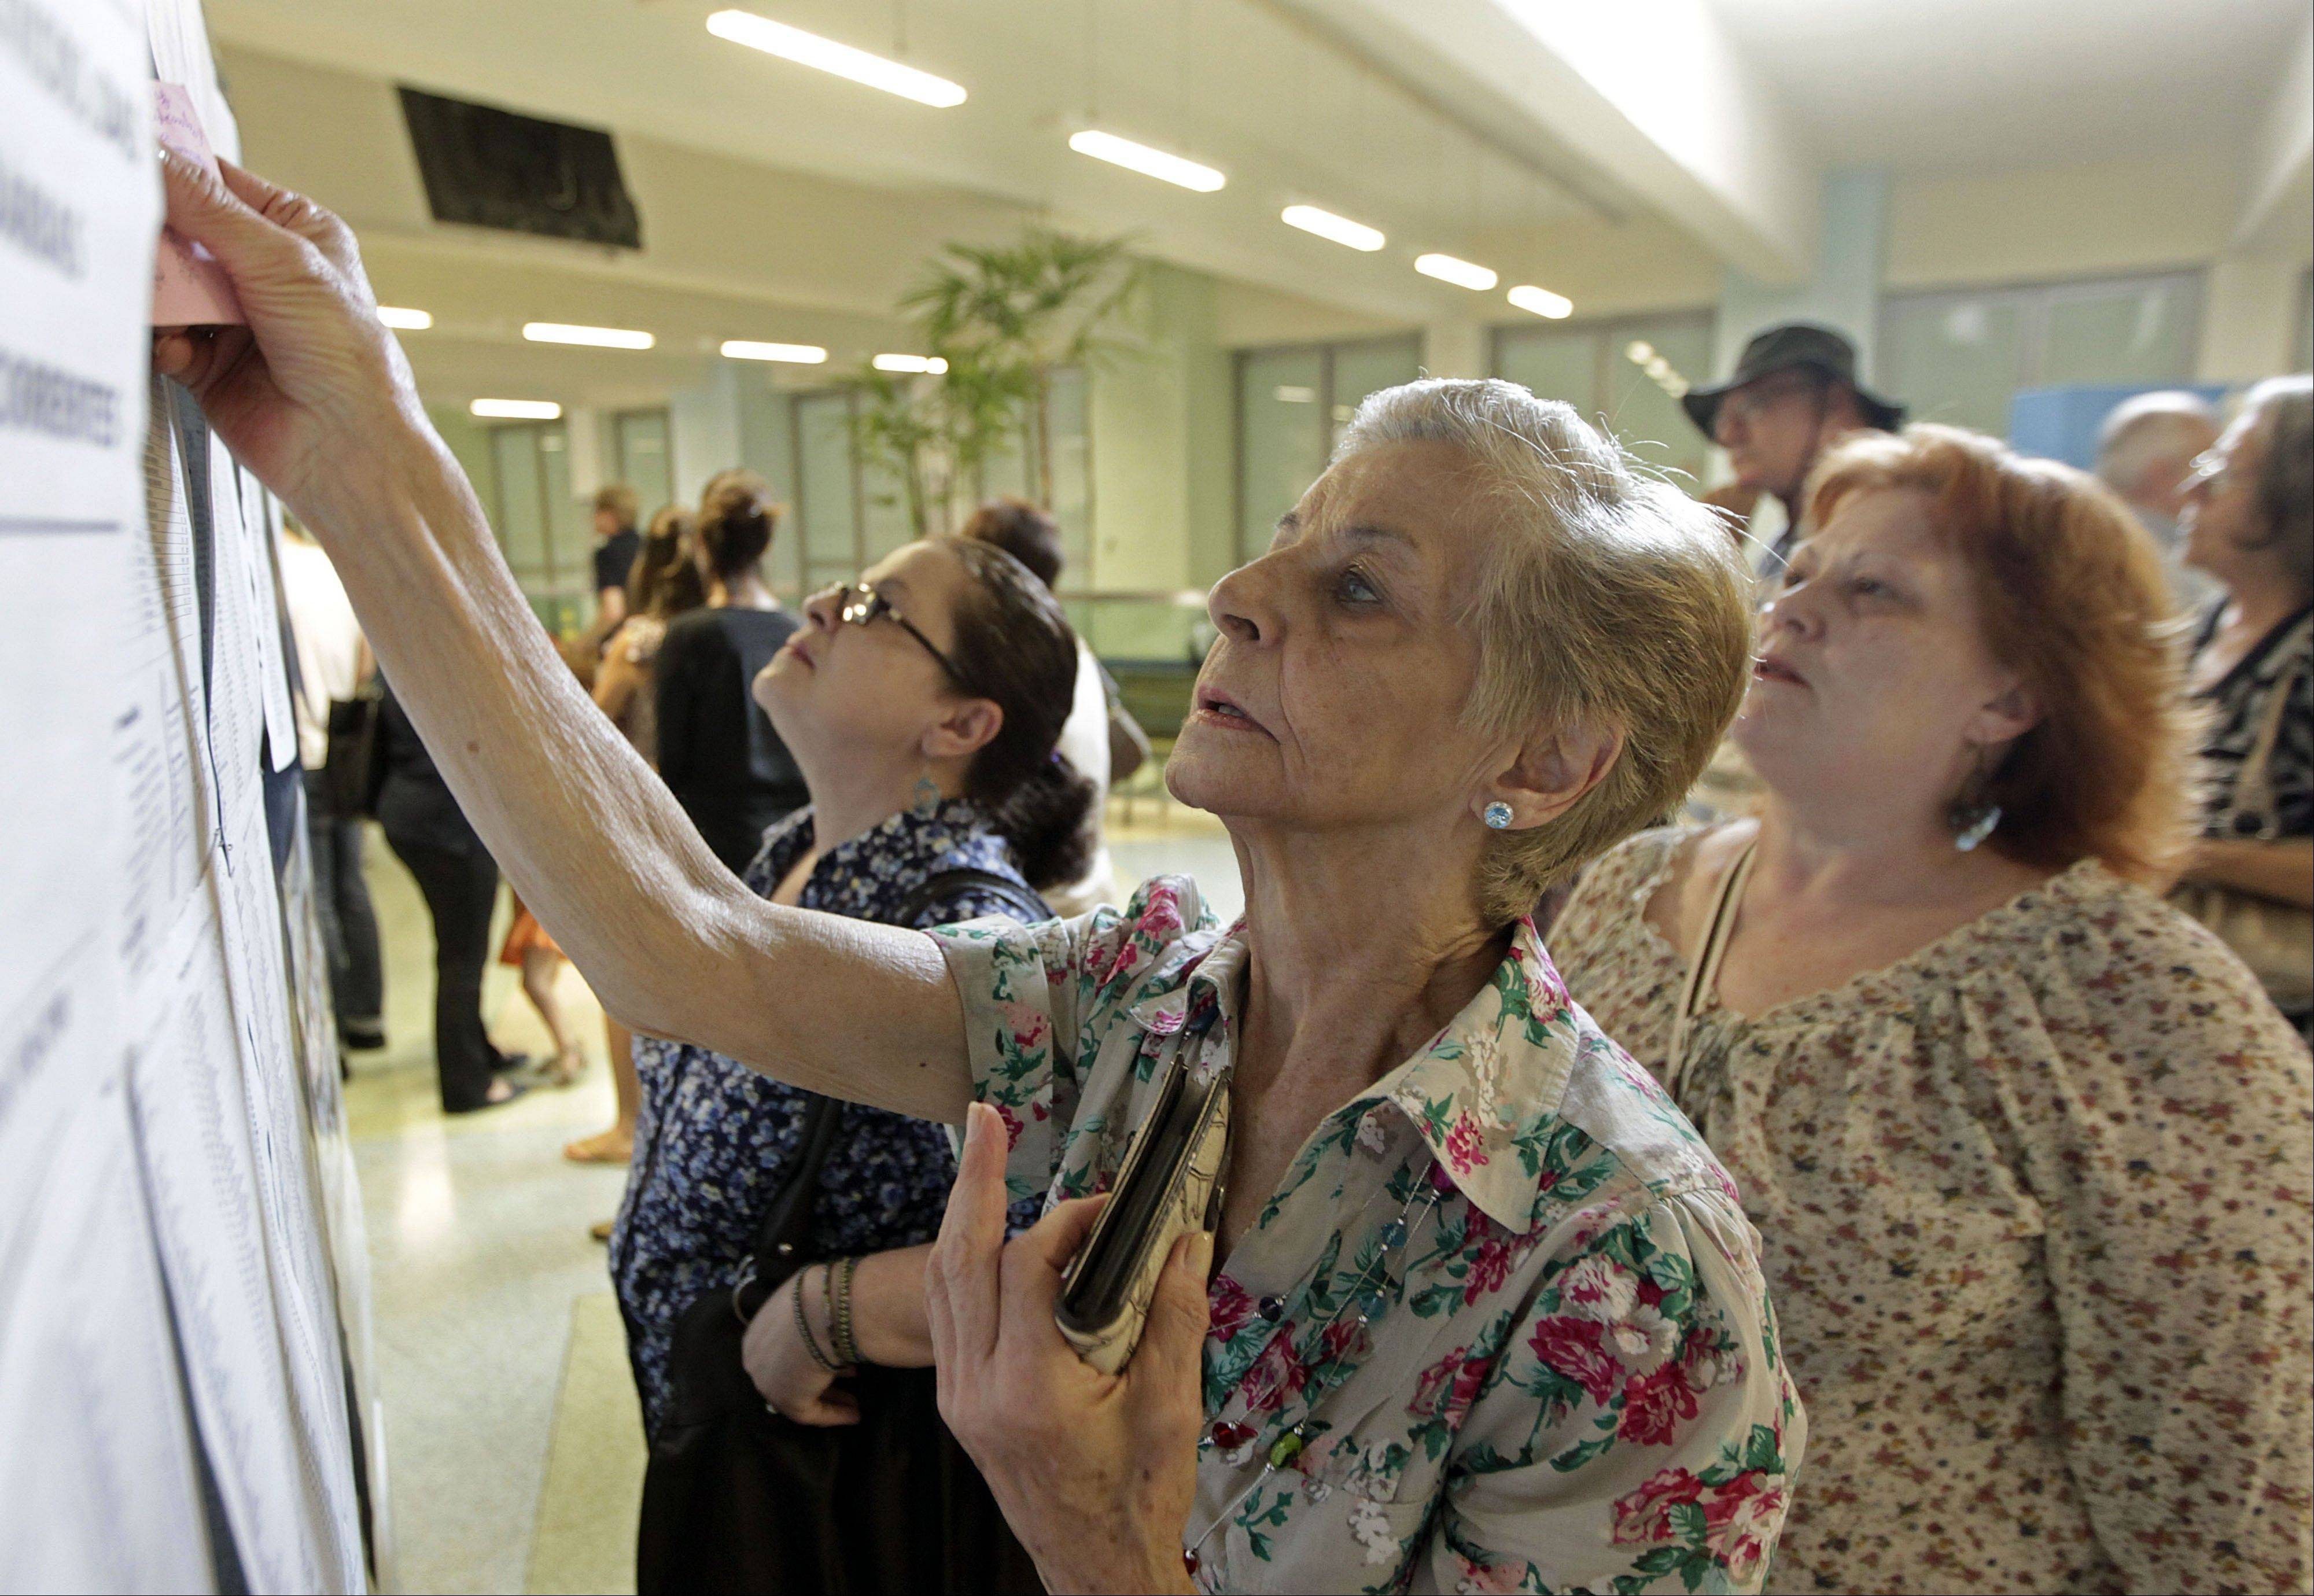 Women check the list of candidates before voting in municipal elections in Sao Paulo, Brazil, Sunday, Oct. 7, 2012. Voters across Latin America�s biggest country are electing mayors and municipal council members.